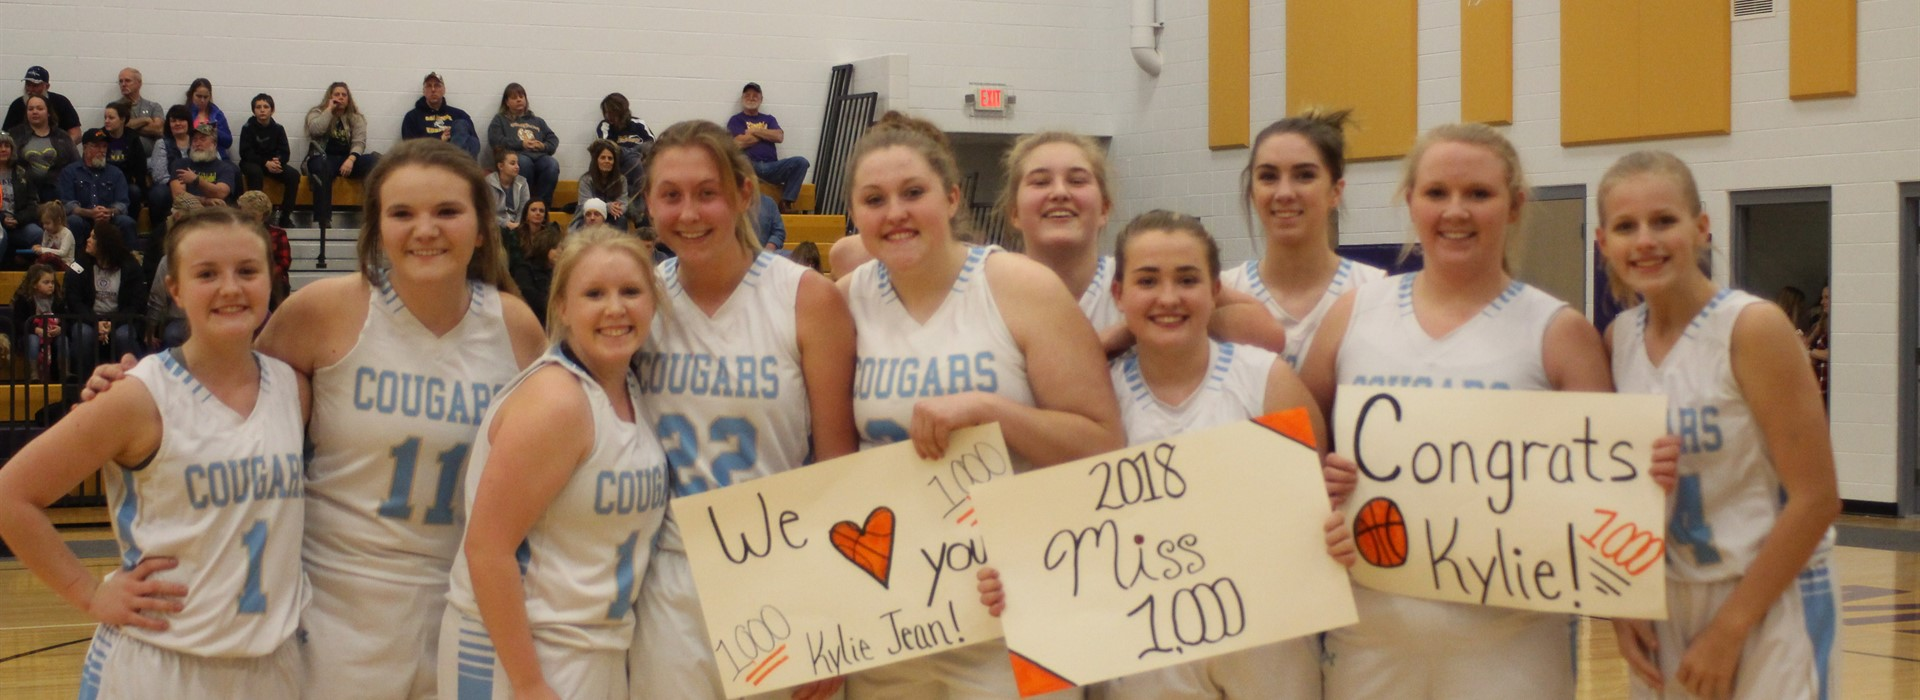 Congrats to Kylie Daugherty on scoring her 1,000th  point!